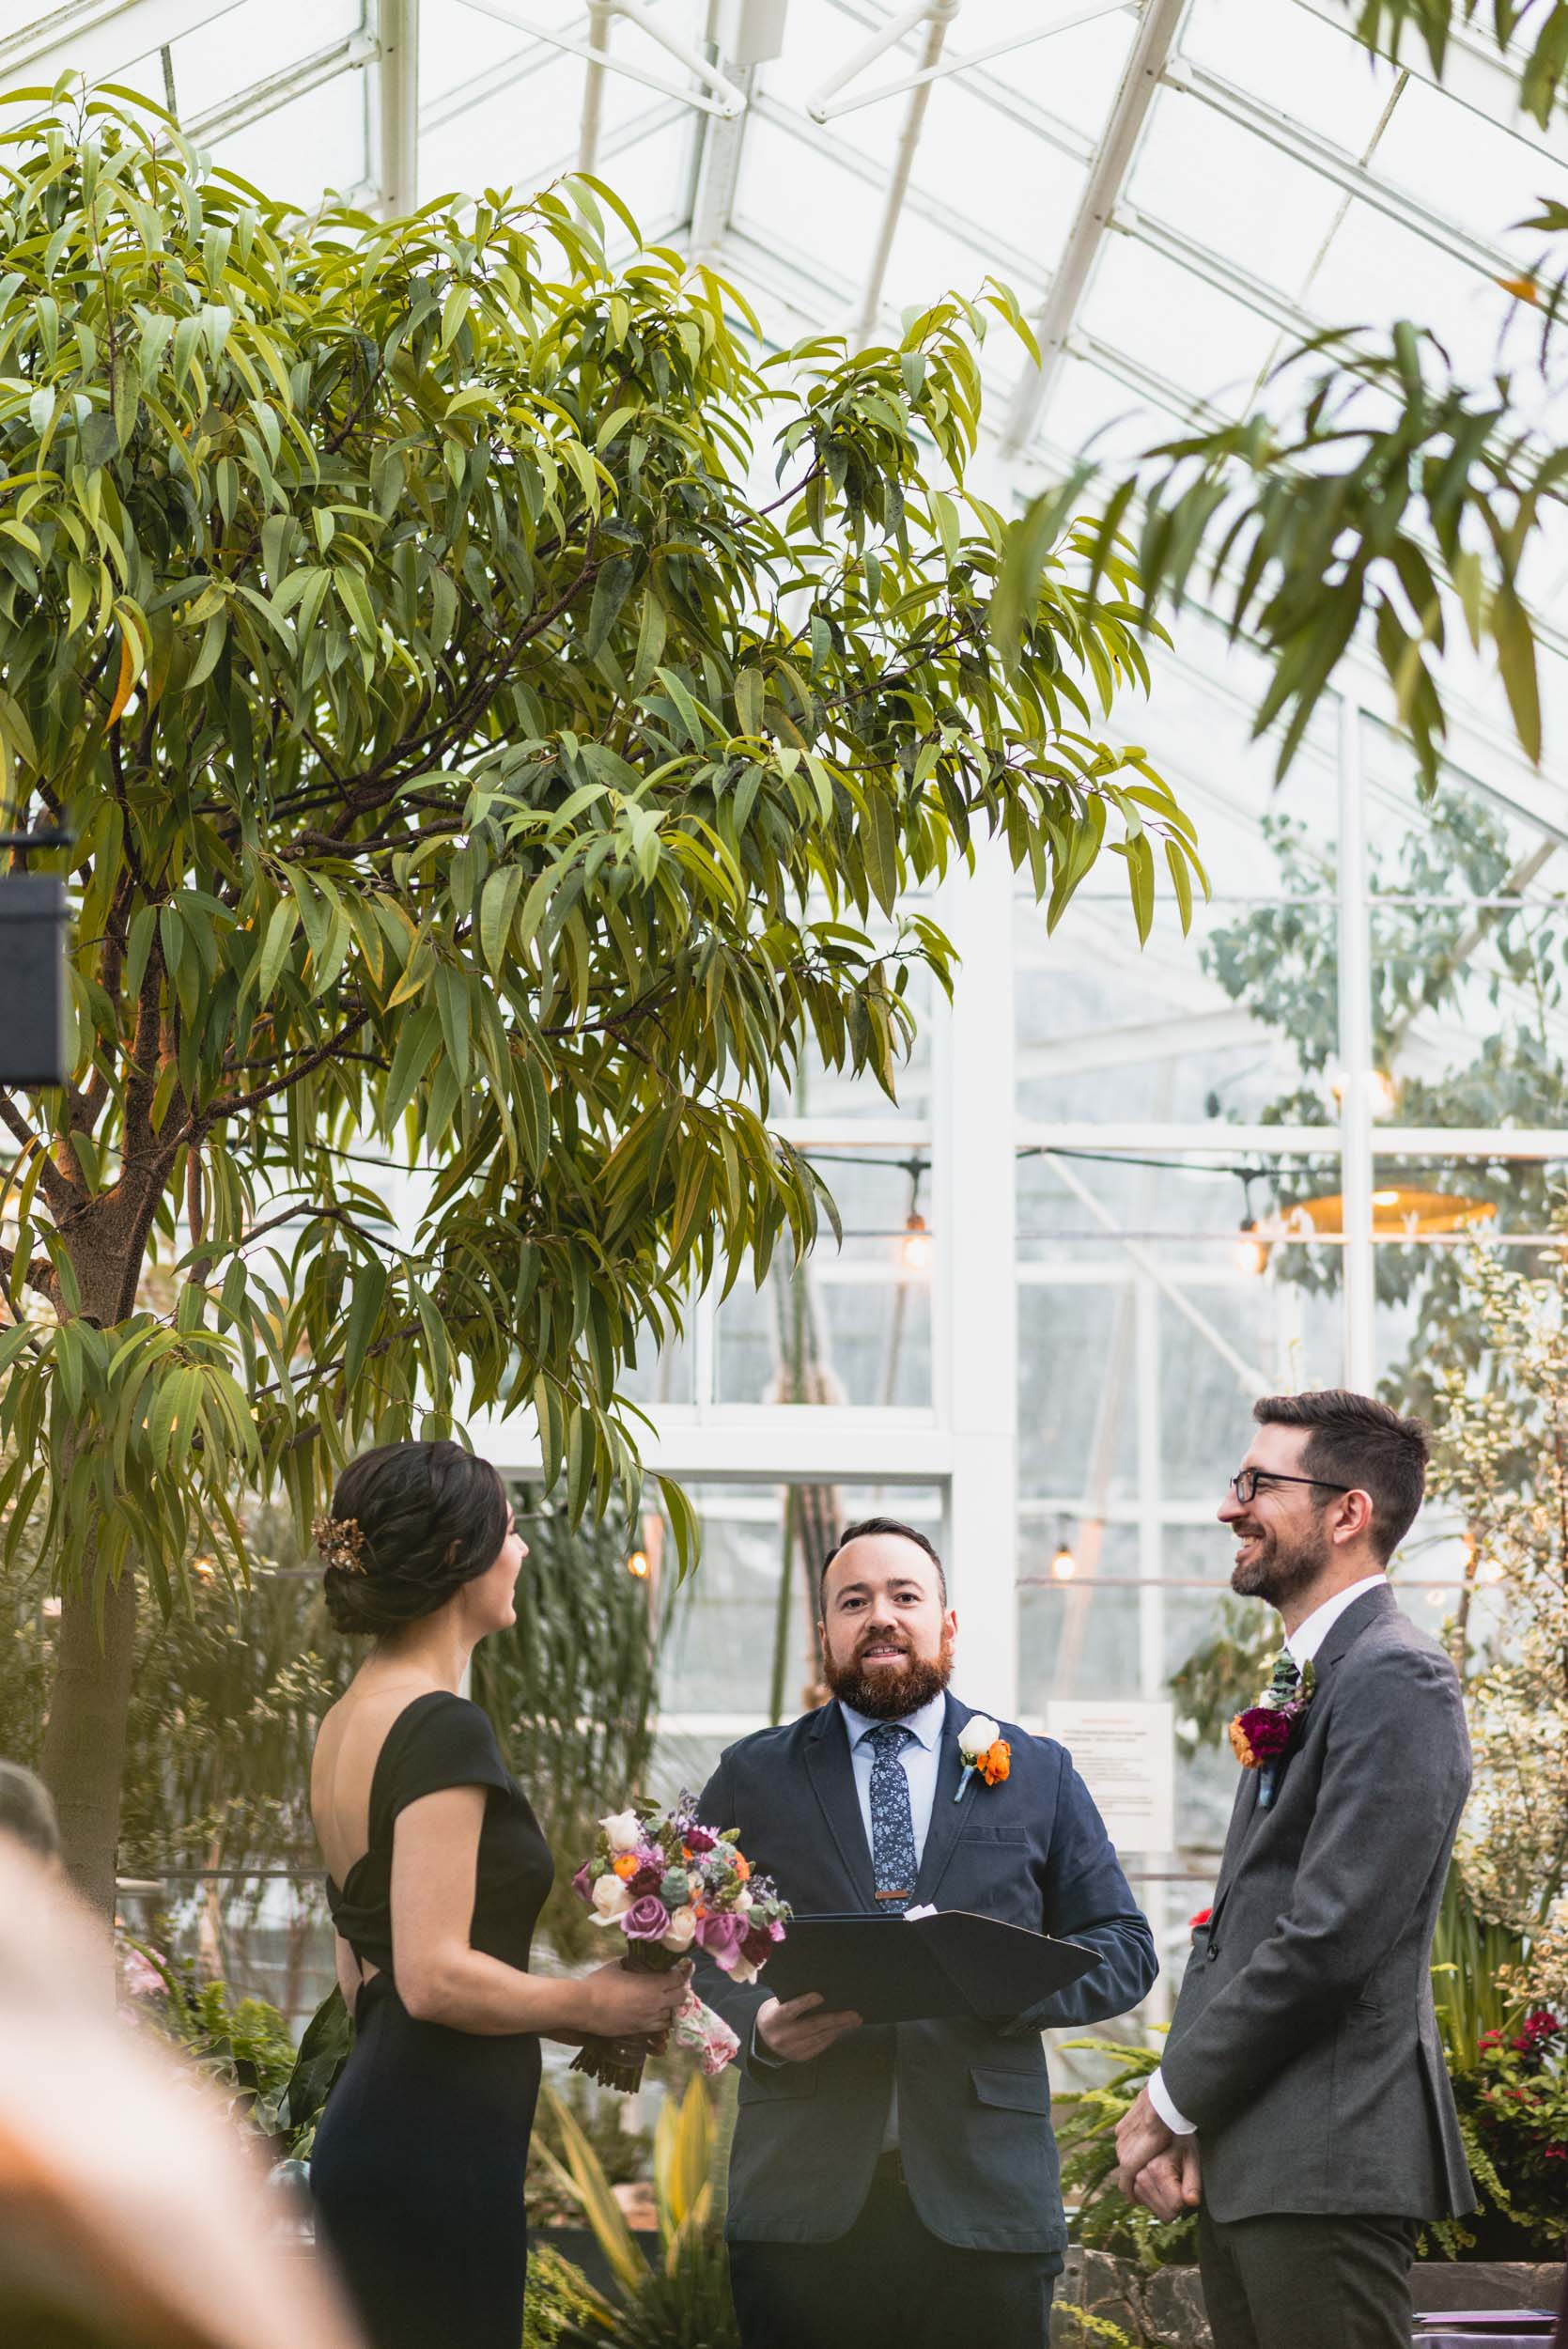 Groom, Bride and Officiant in conservatory